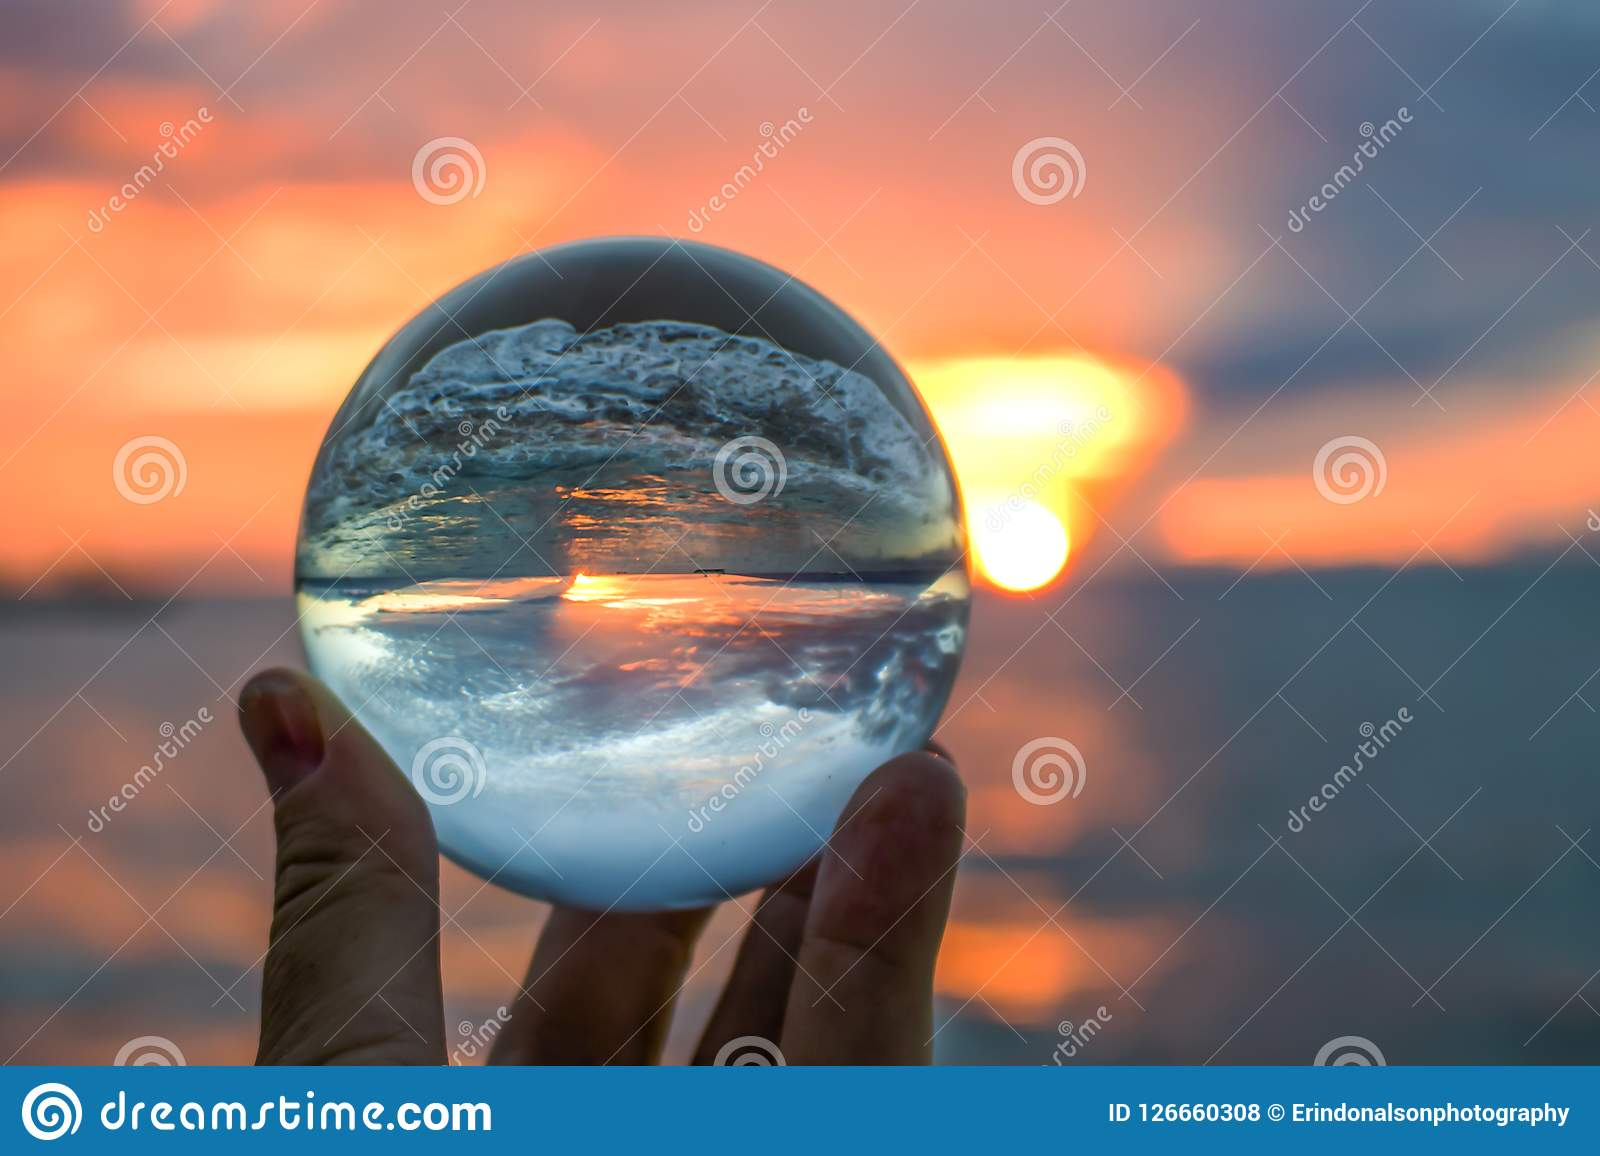 Sunset in Bright Orange with Wave Breaking on Sand Captured in Glass Ball